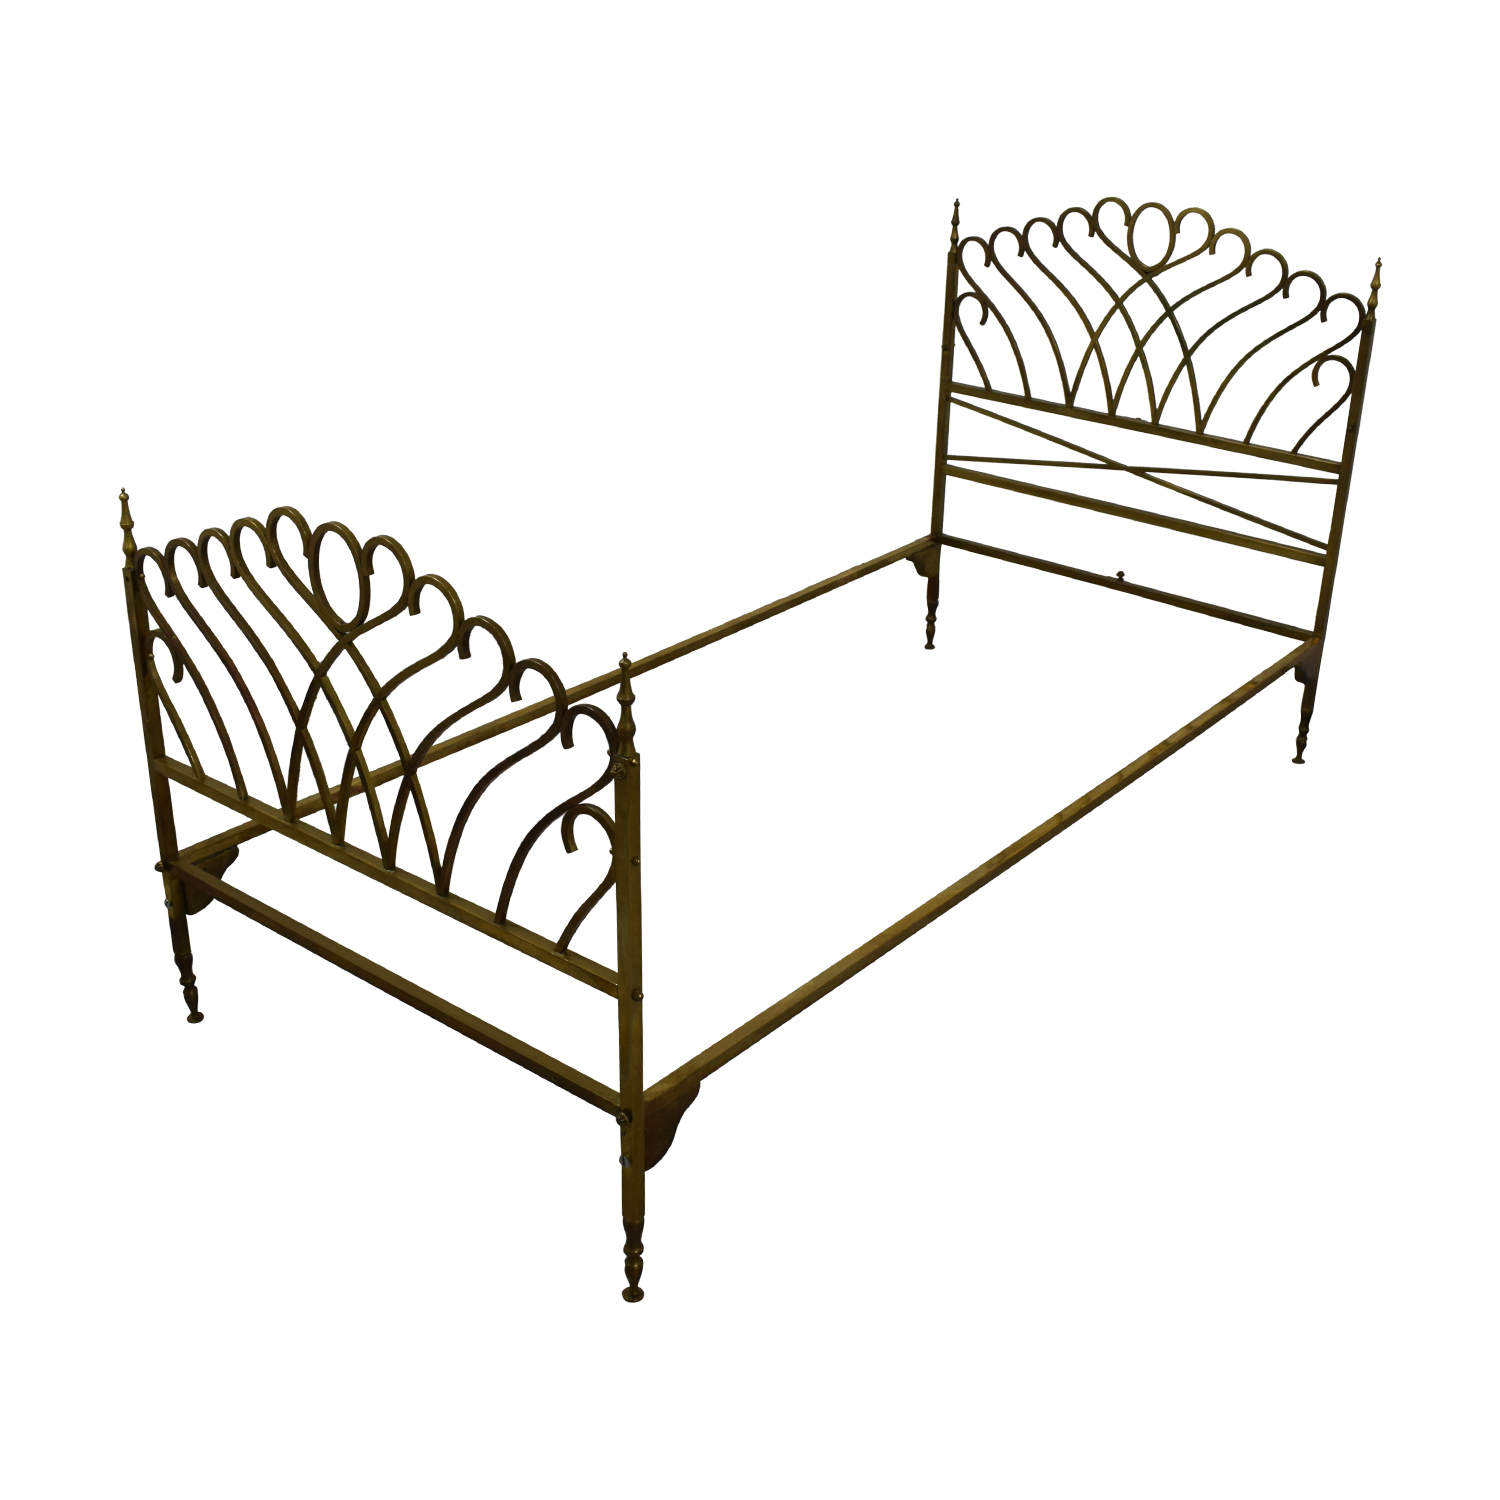 Scrolled Brass Twin Bed Frame for sale